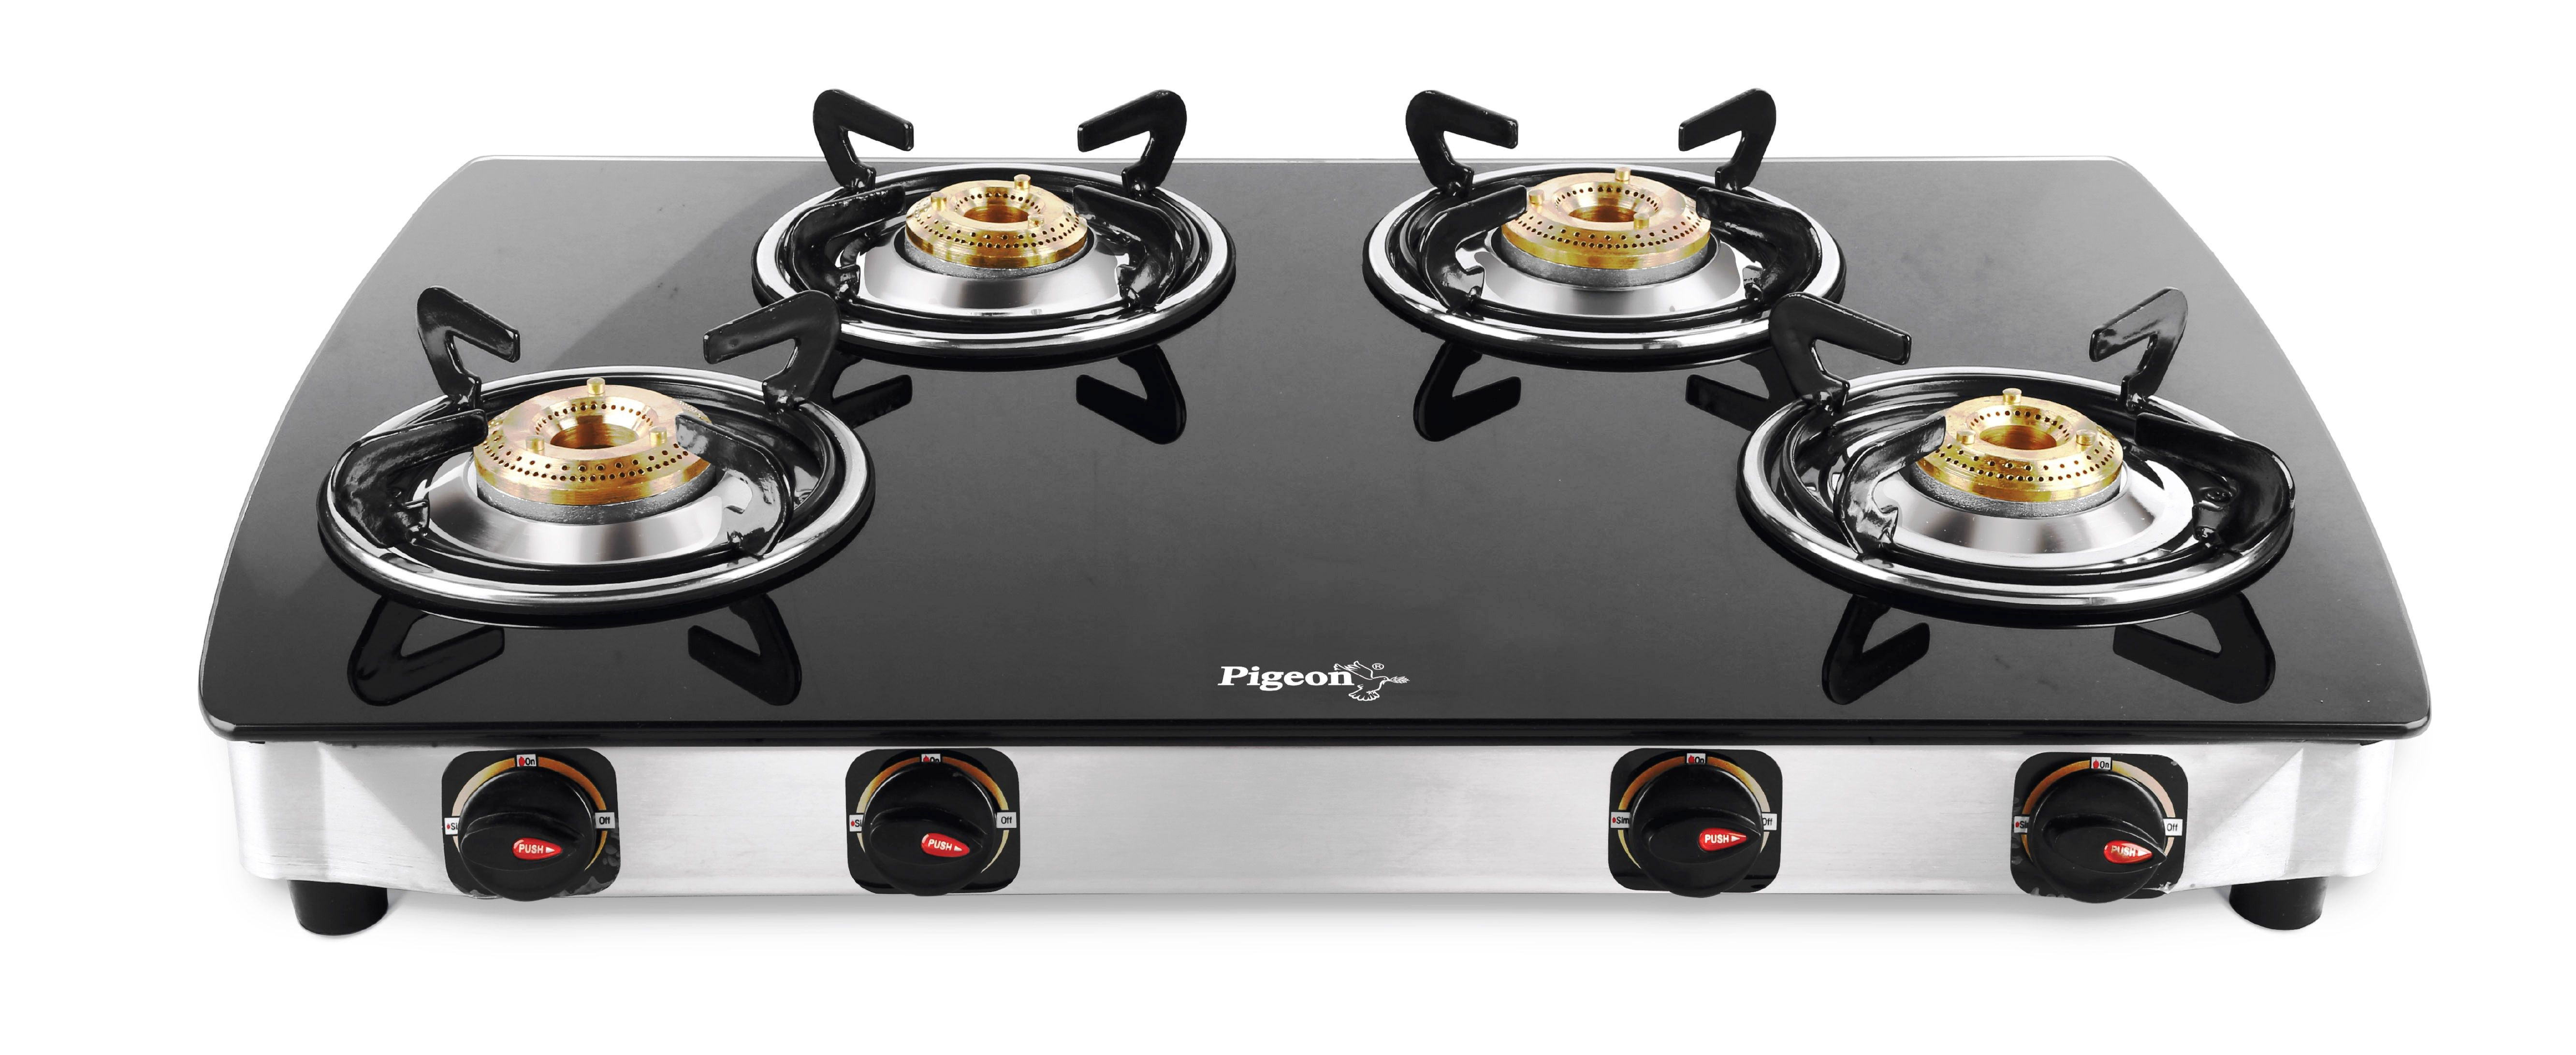 pigeon oval zz 4 burner manual gas stove price in india buy pigeon